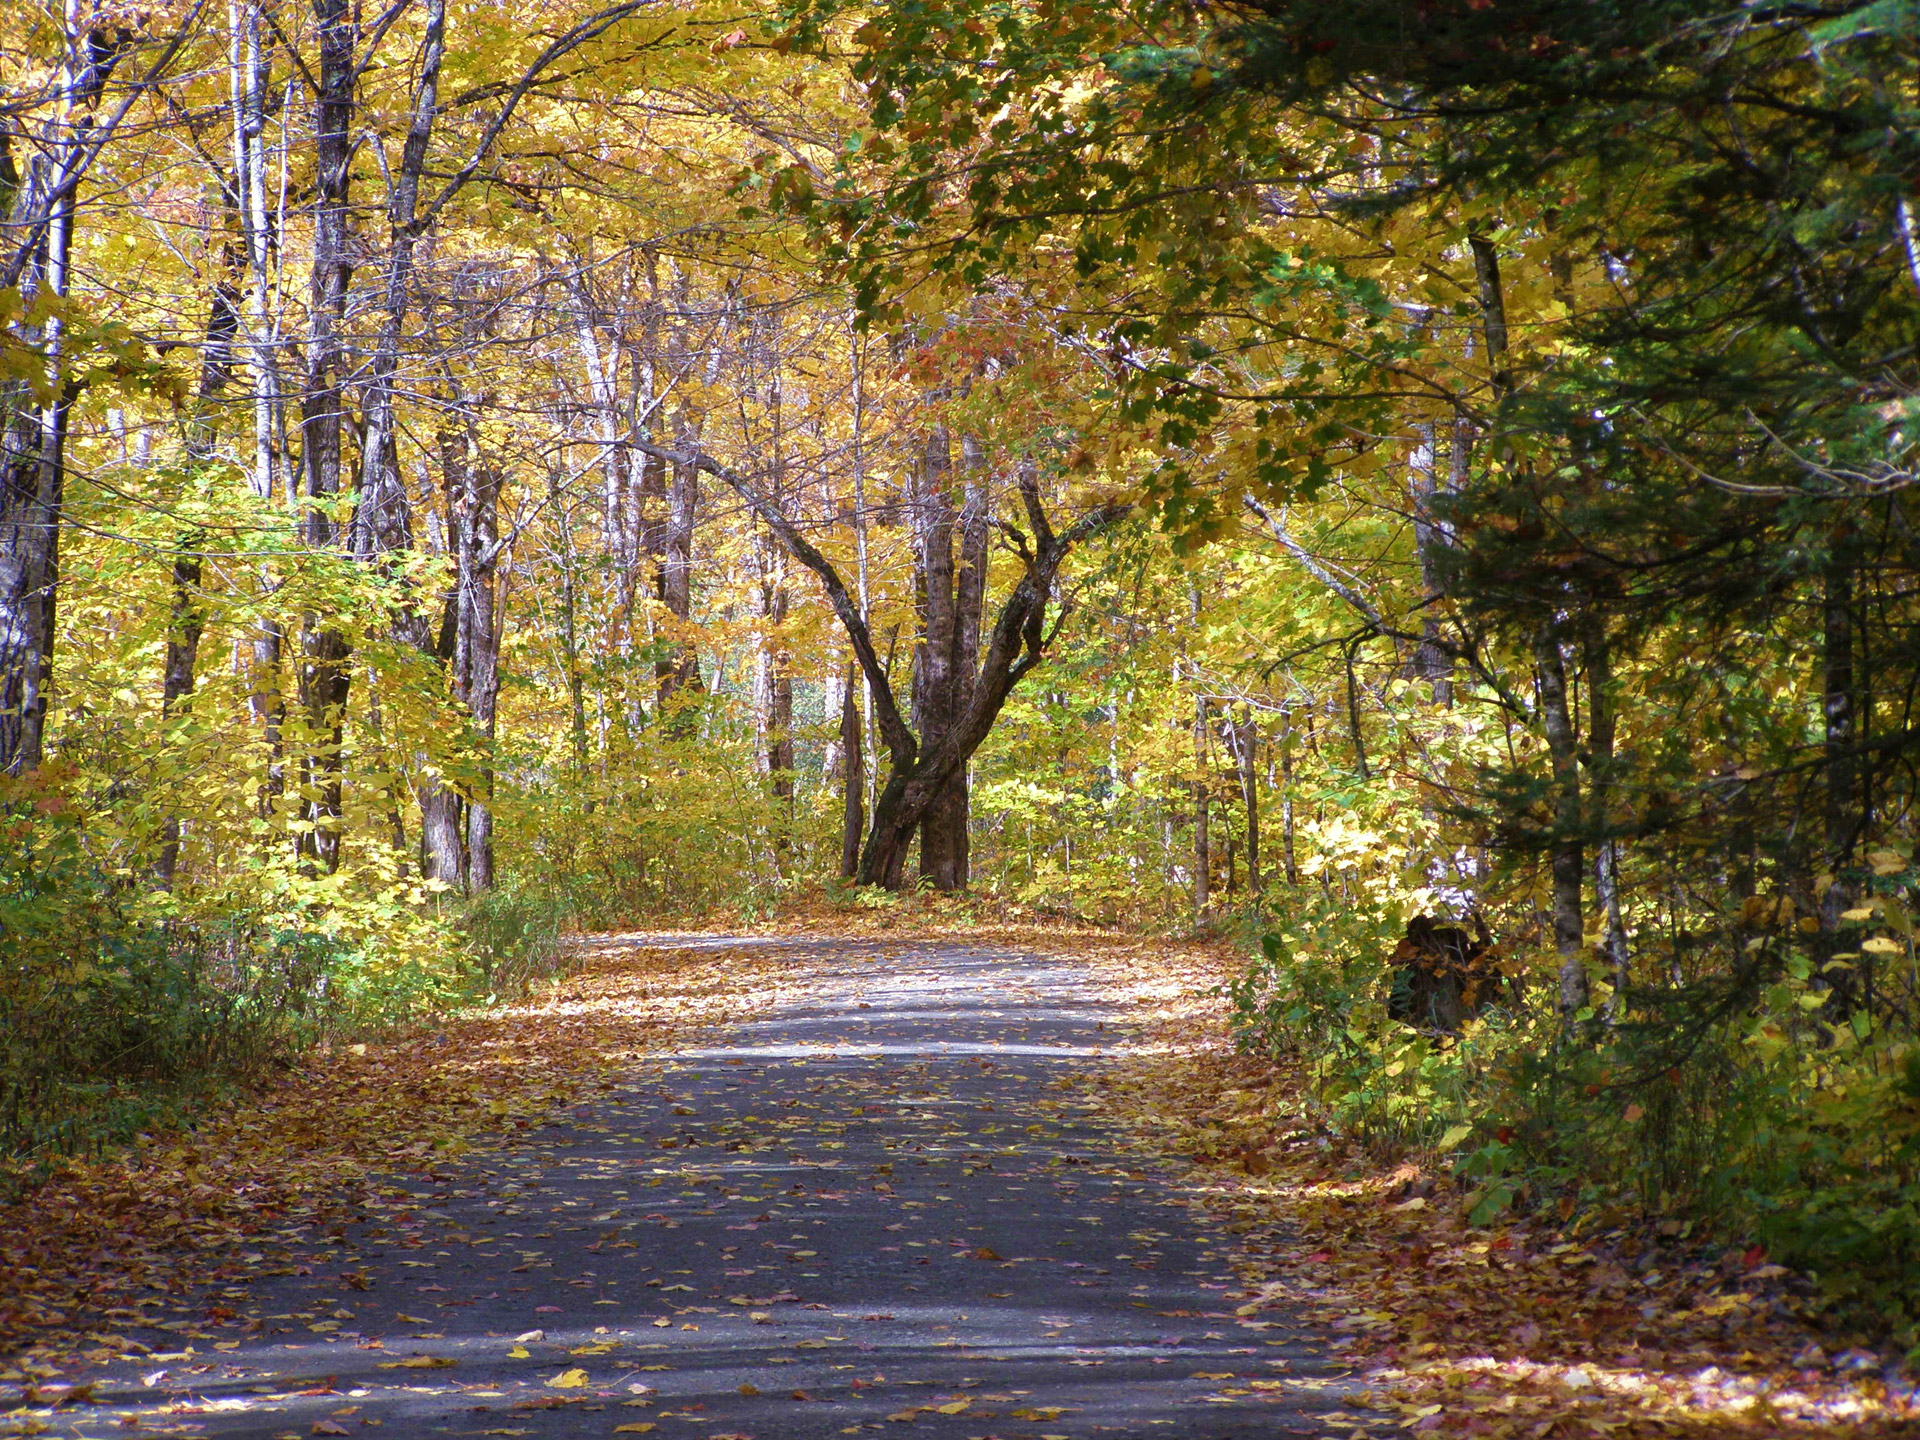 Free Computer Fall Wallpaper Beautiful Country Road In Fall Free Stock Photo Public